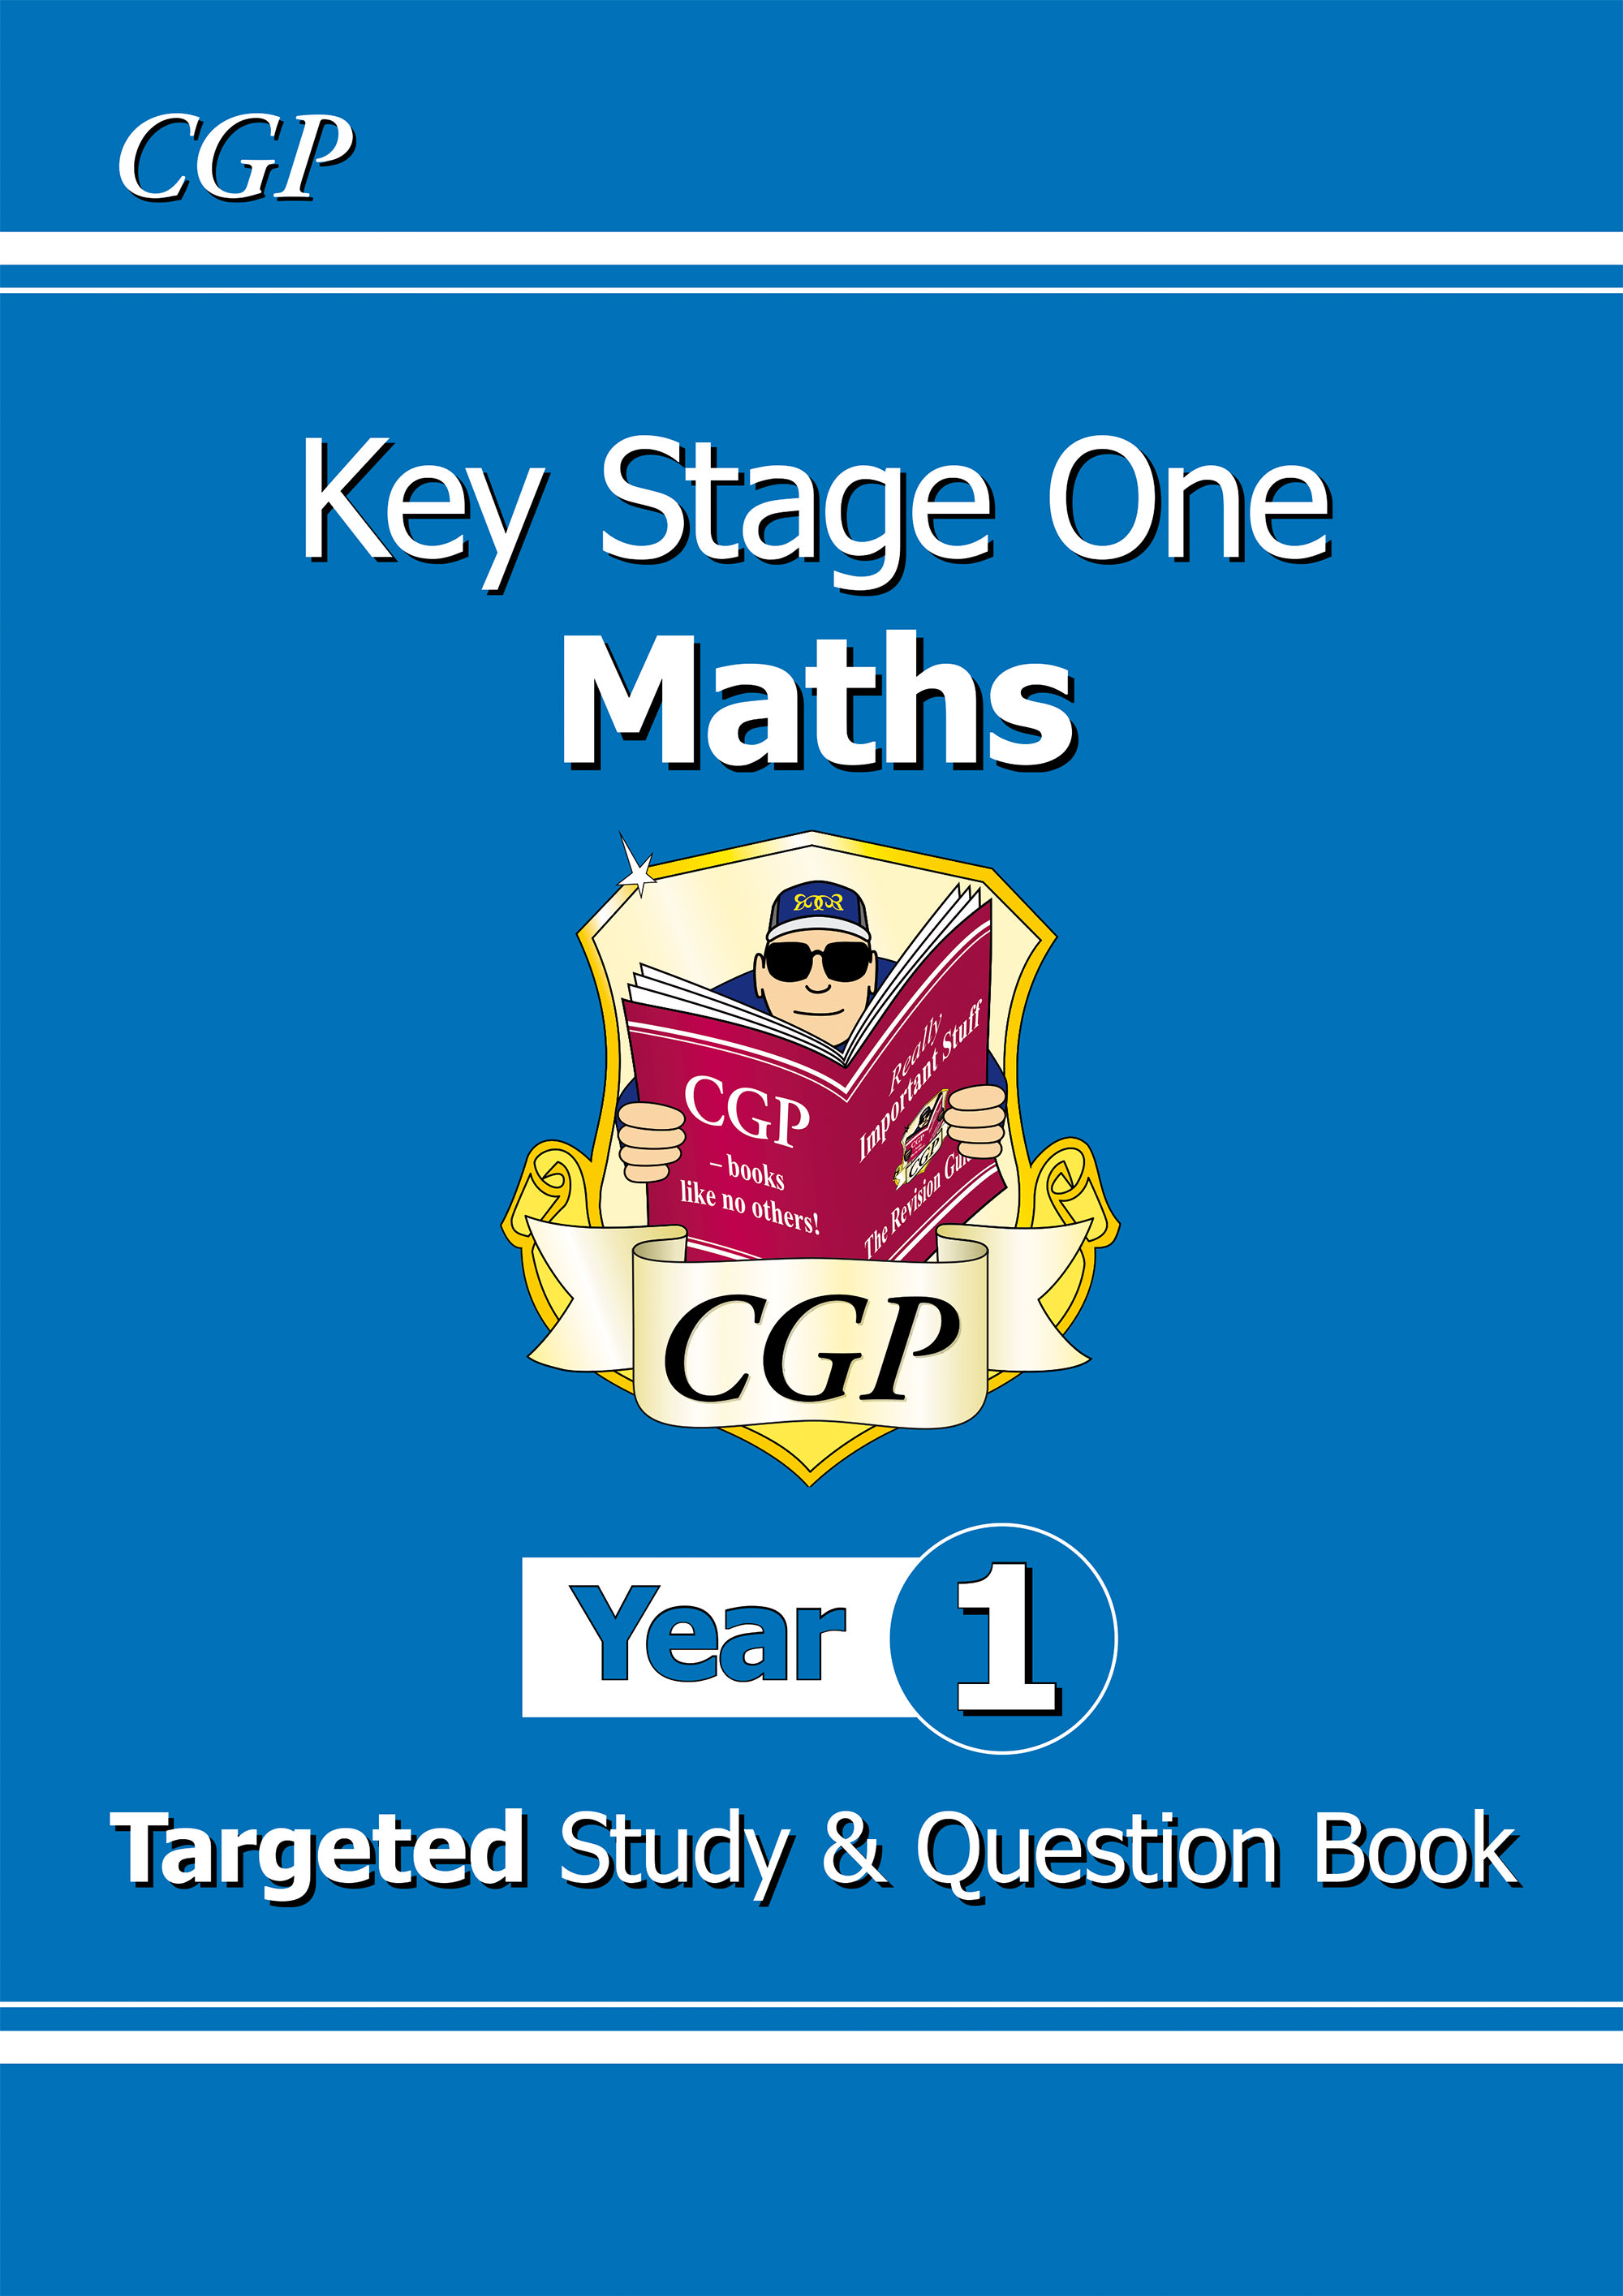 M1R11DK - KS1 Maths Targeted Study & Question Book - Year 1